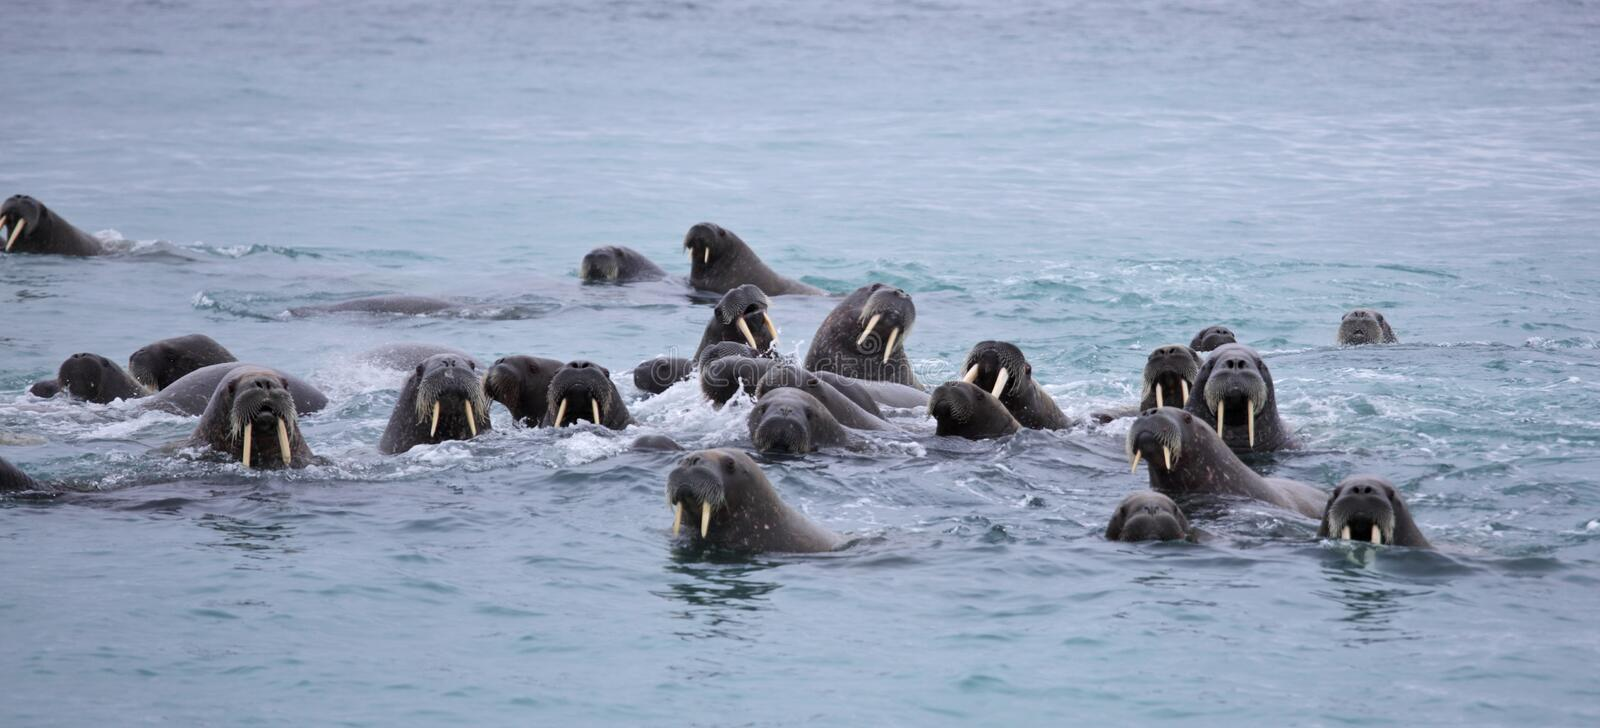 Walrus family in the sea. Atlantic walrus haul-out in the Barents Sea in Arctic stock photography